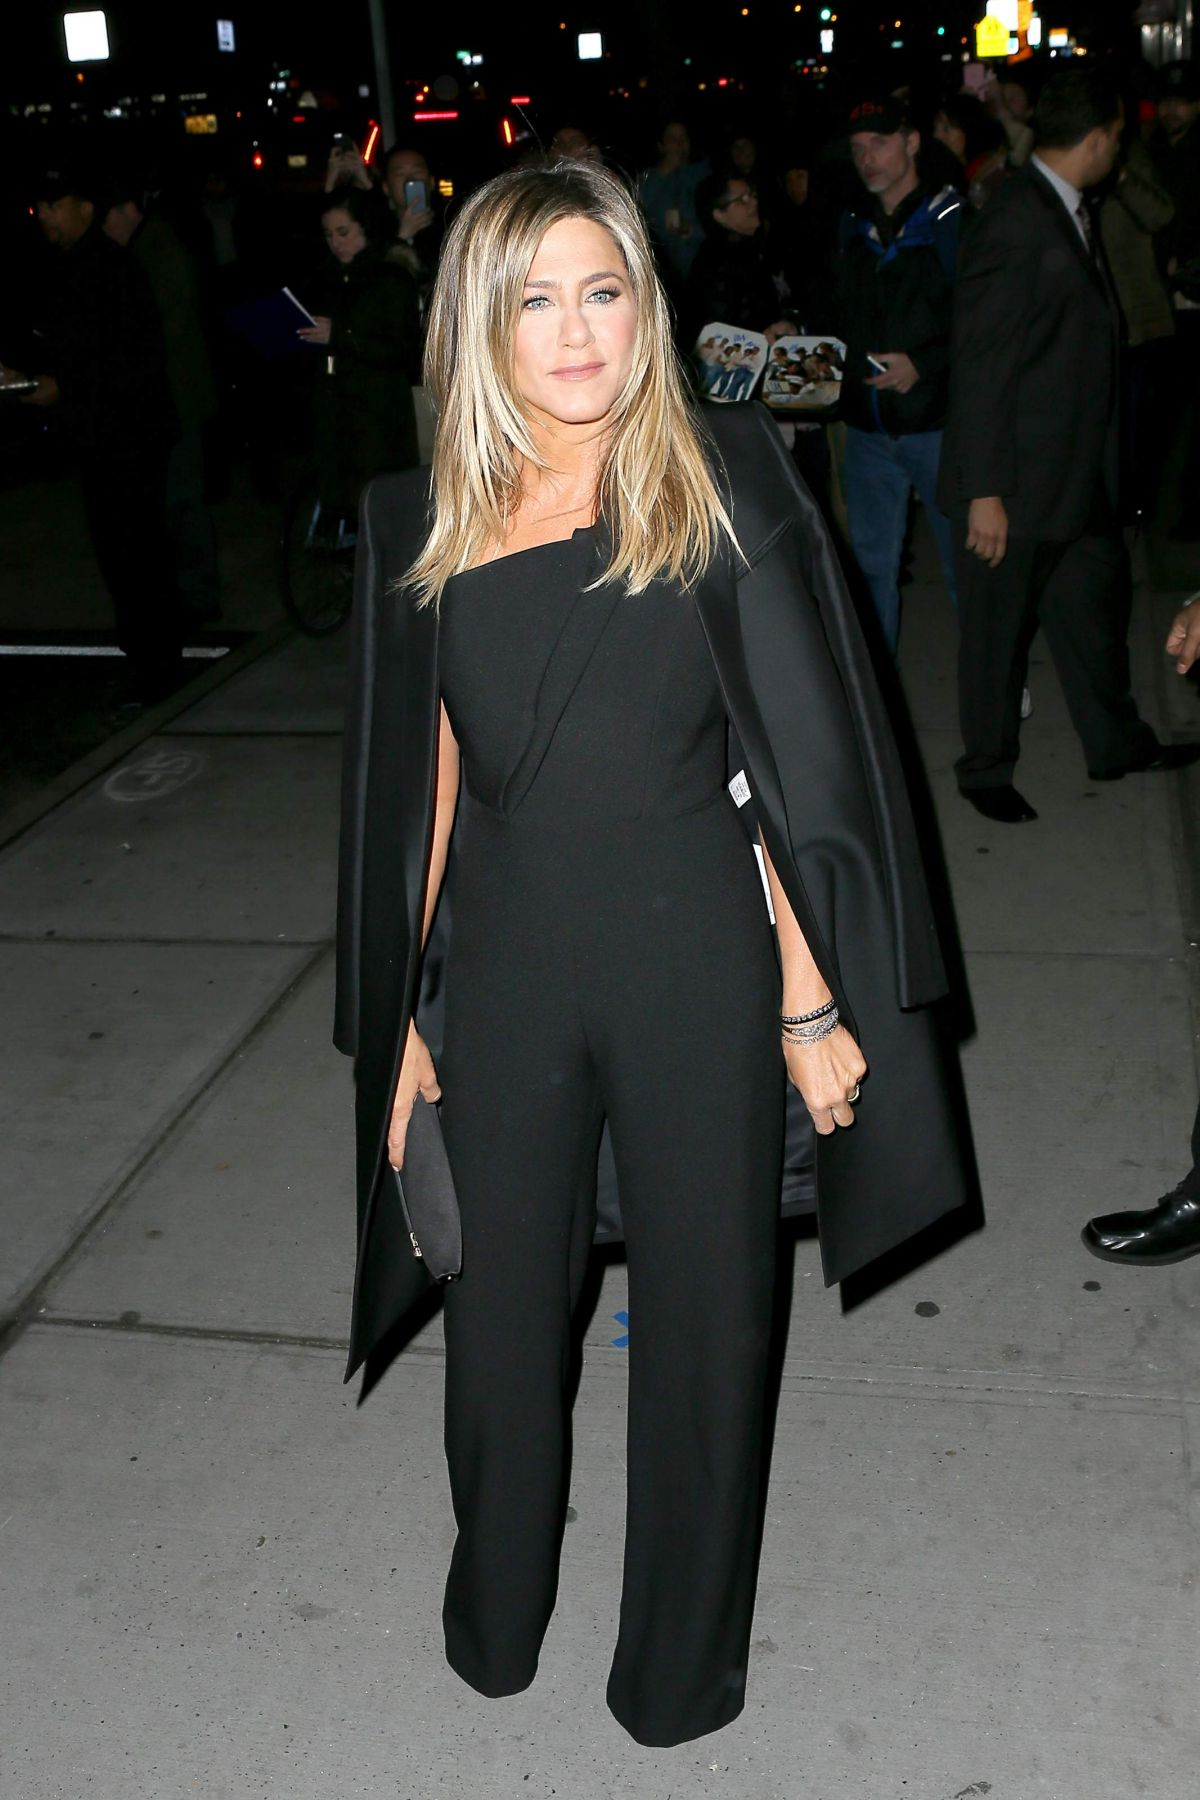 Jennifer Aniston Seen at 'Office Christmas Party' at Landmark Sunshine Cinema, NY   jennifer-aniston-seen-at-office-christmas-party-at-landmark-sunshine-cinema-ny_6